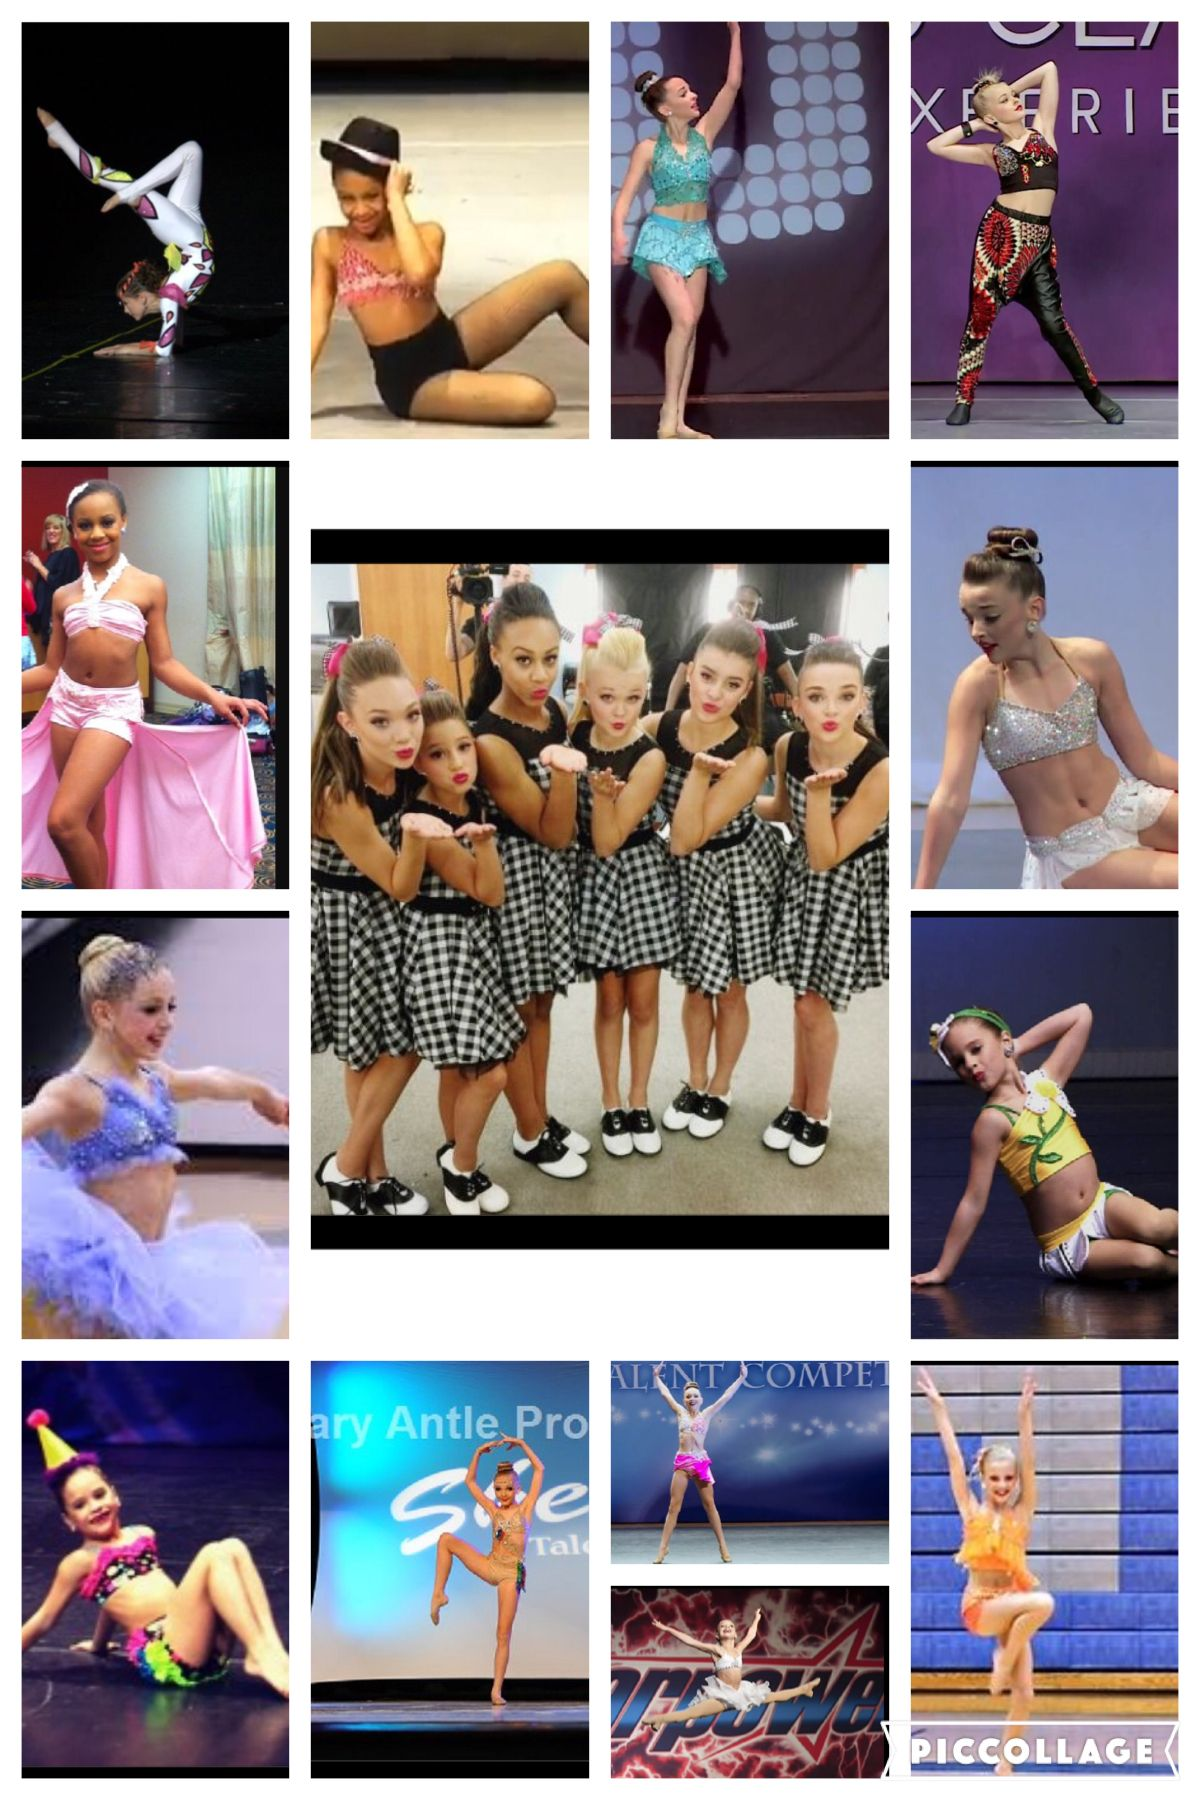 Dance moms 30 day challenge day 15: Favourite costume(s)  All of the ones above:)